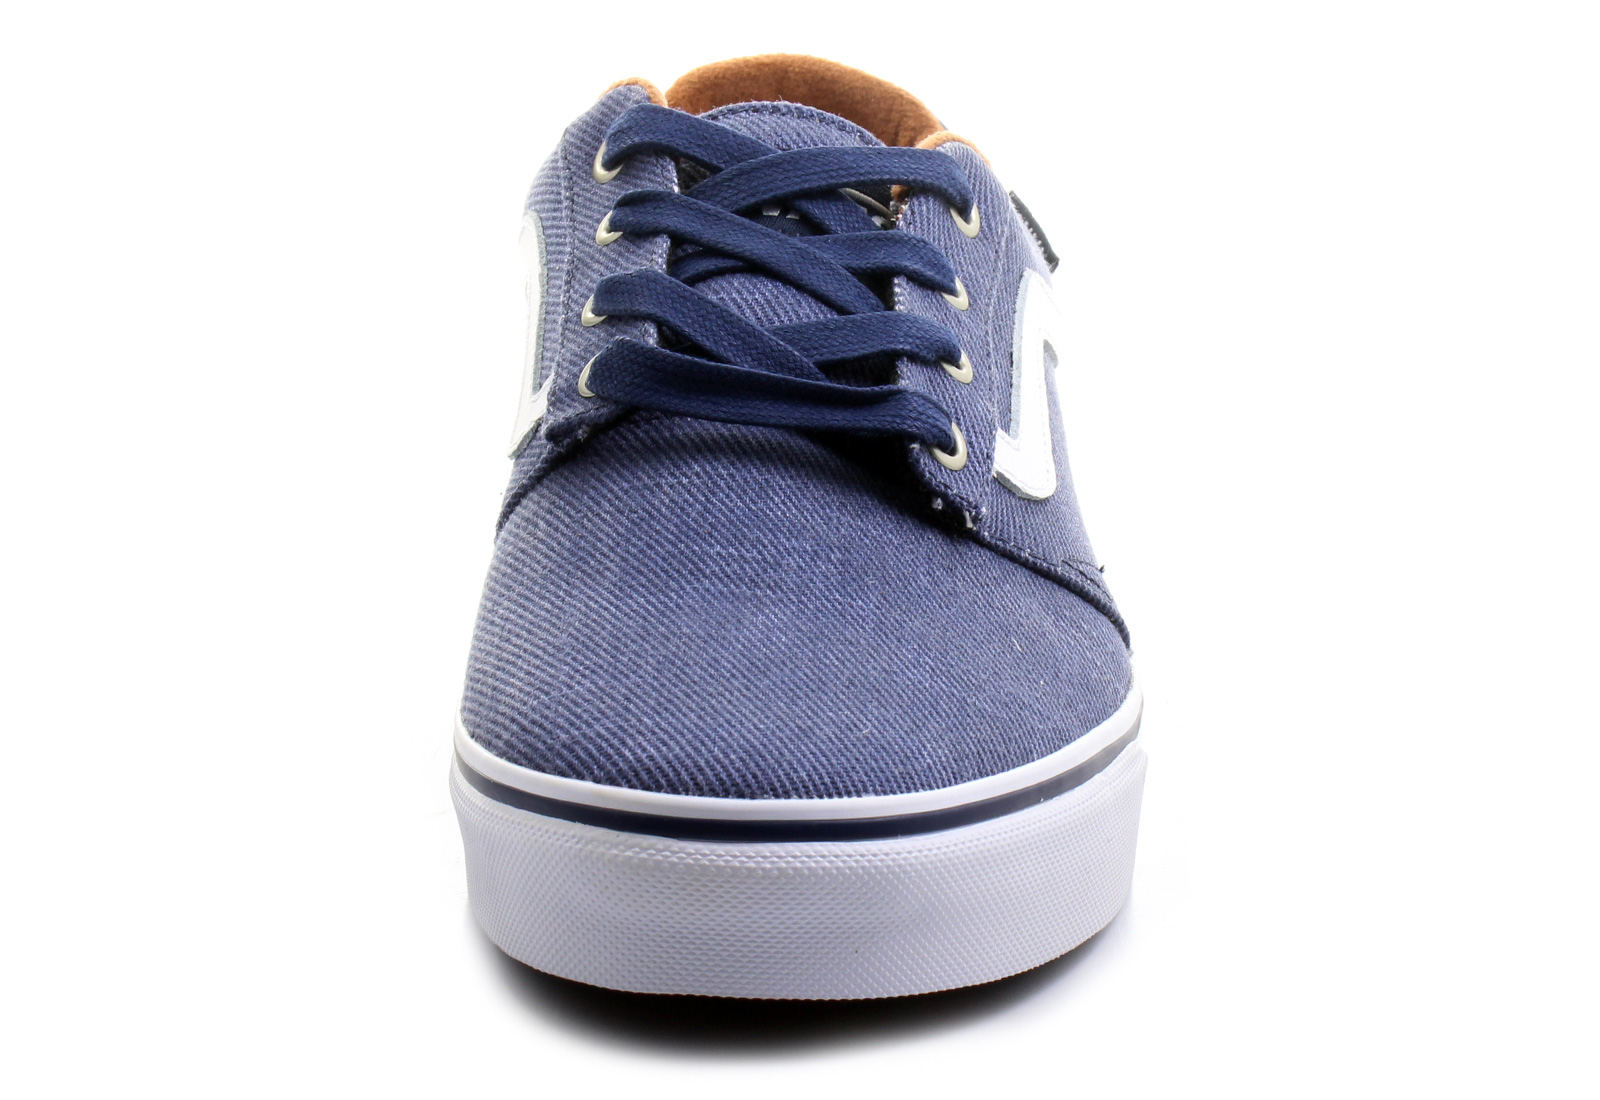 12c9479abe9 Vans Mens Chapman Canvas Low Top Lace Up Fashion Sneakers